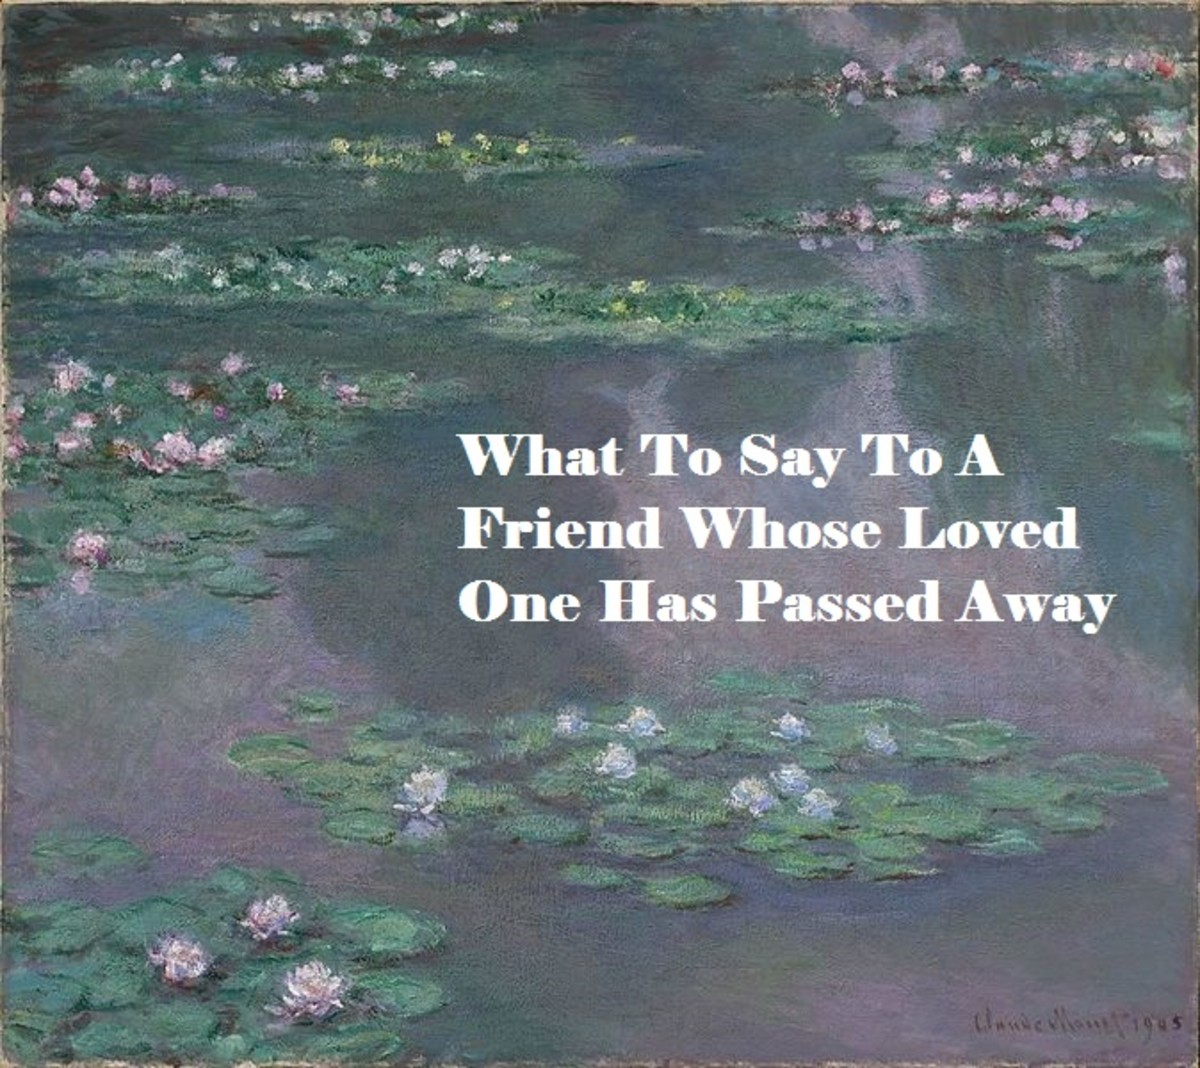 If you are struggling for what to say to a friend who is grieving over a death, here are some ideas.